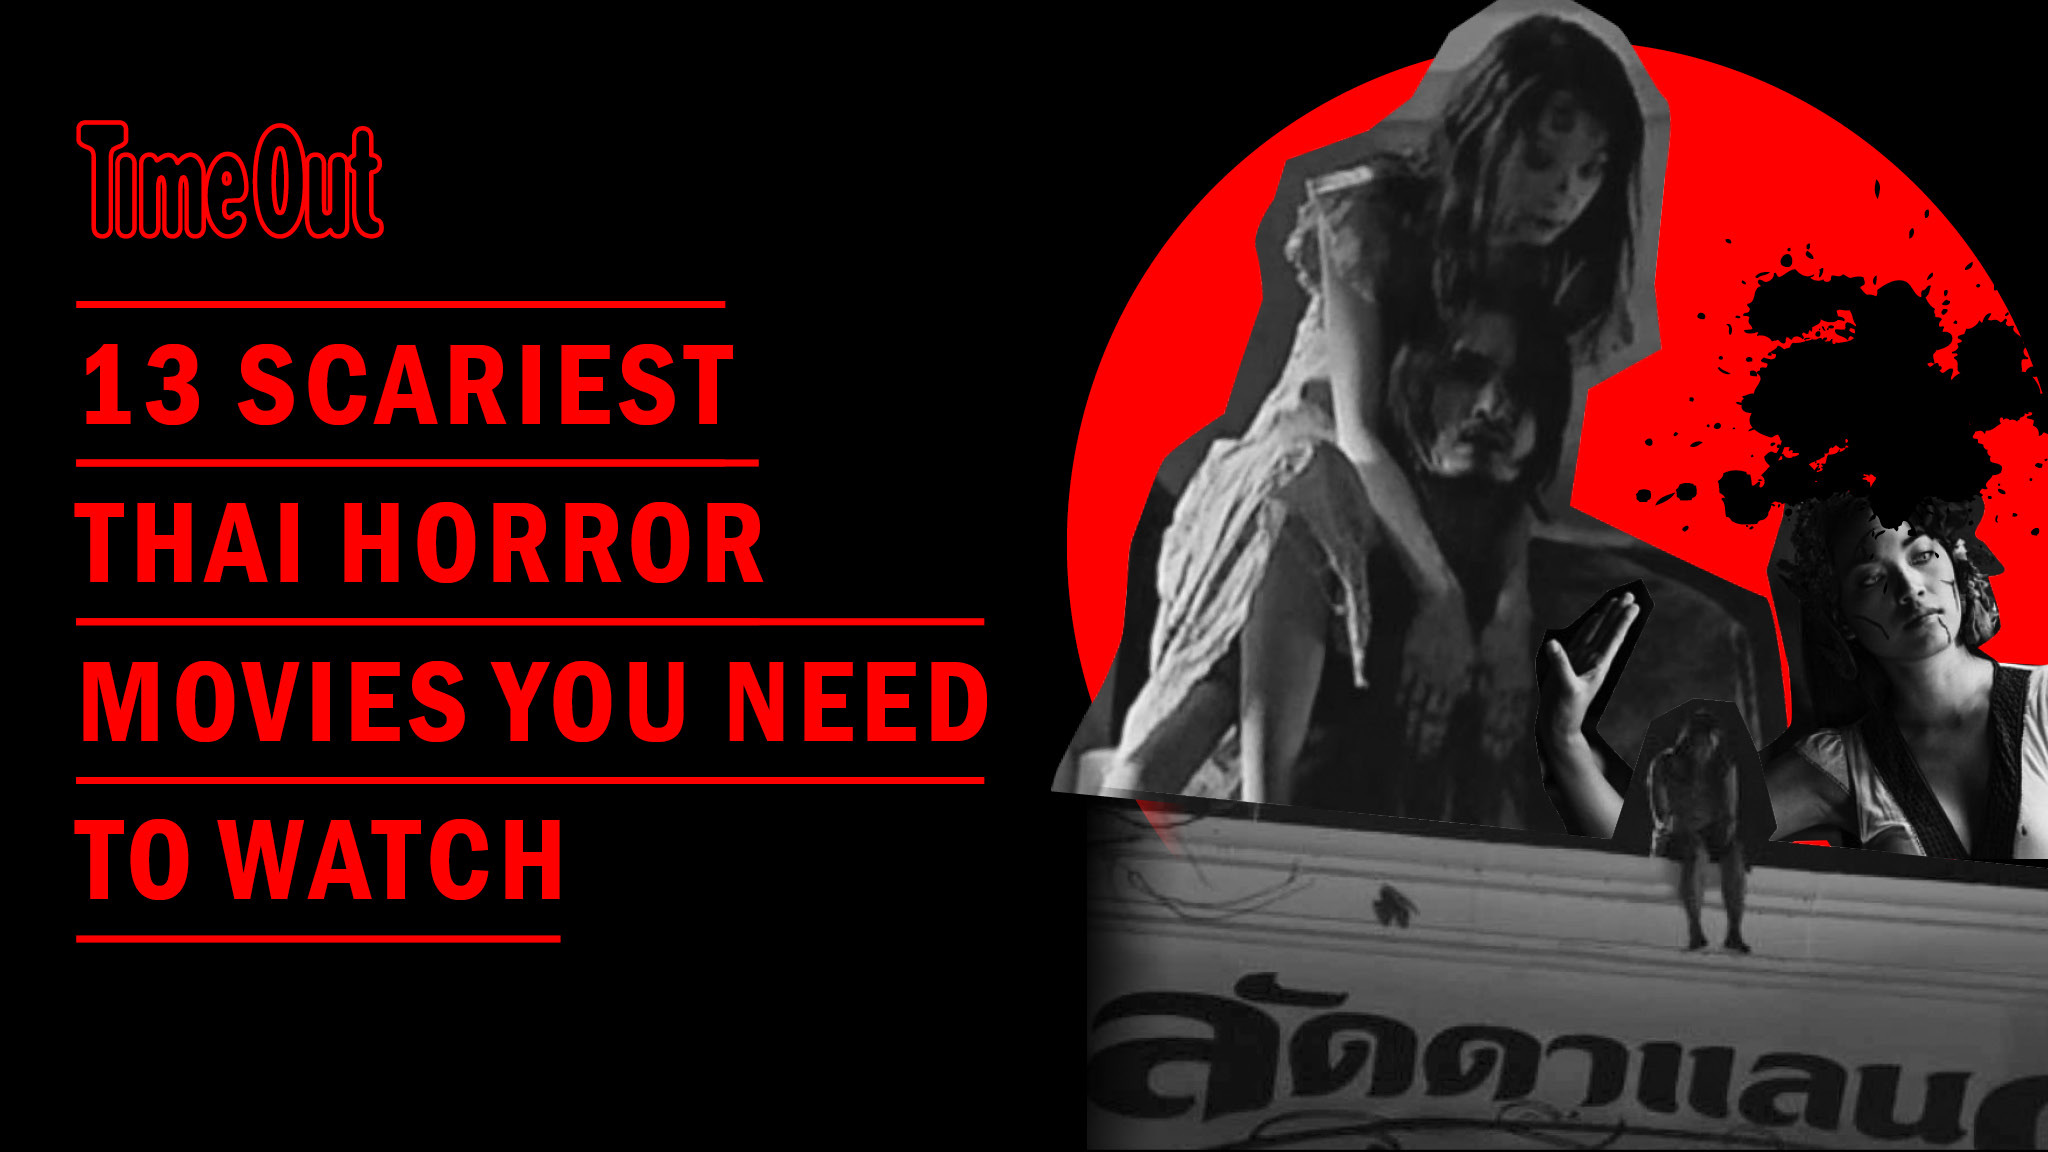 13 scariest Thai horror movies you need to watch